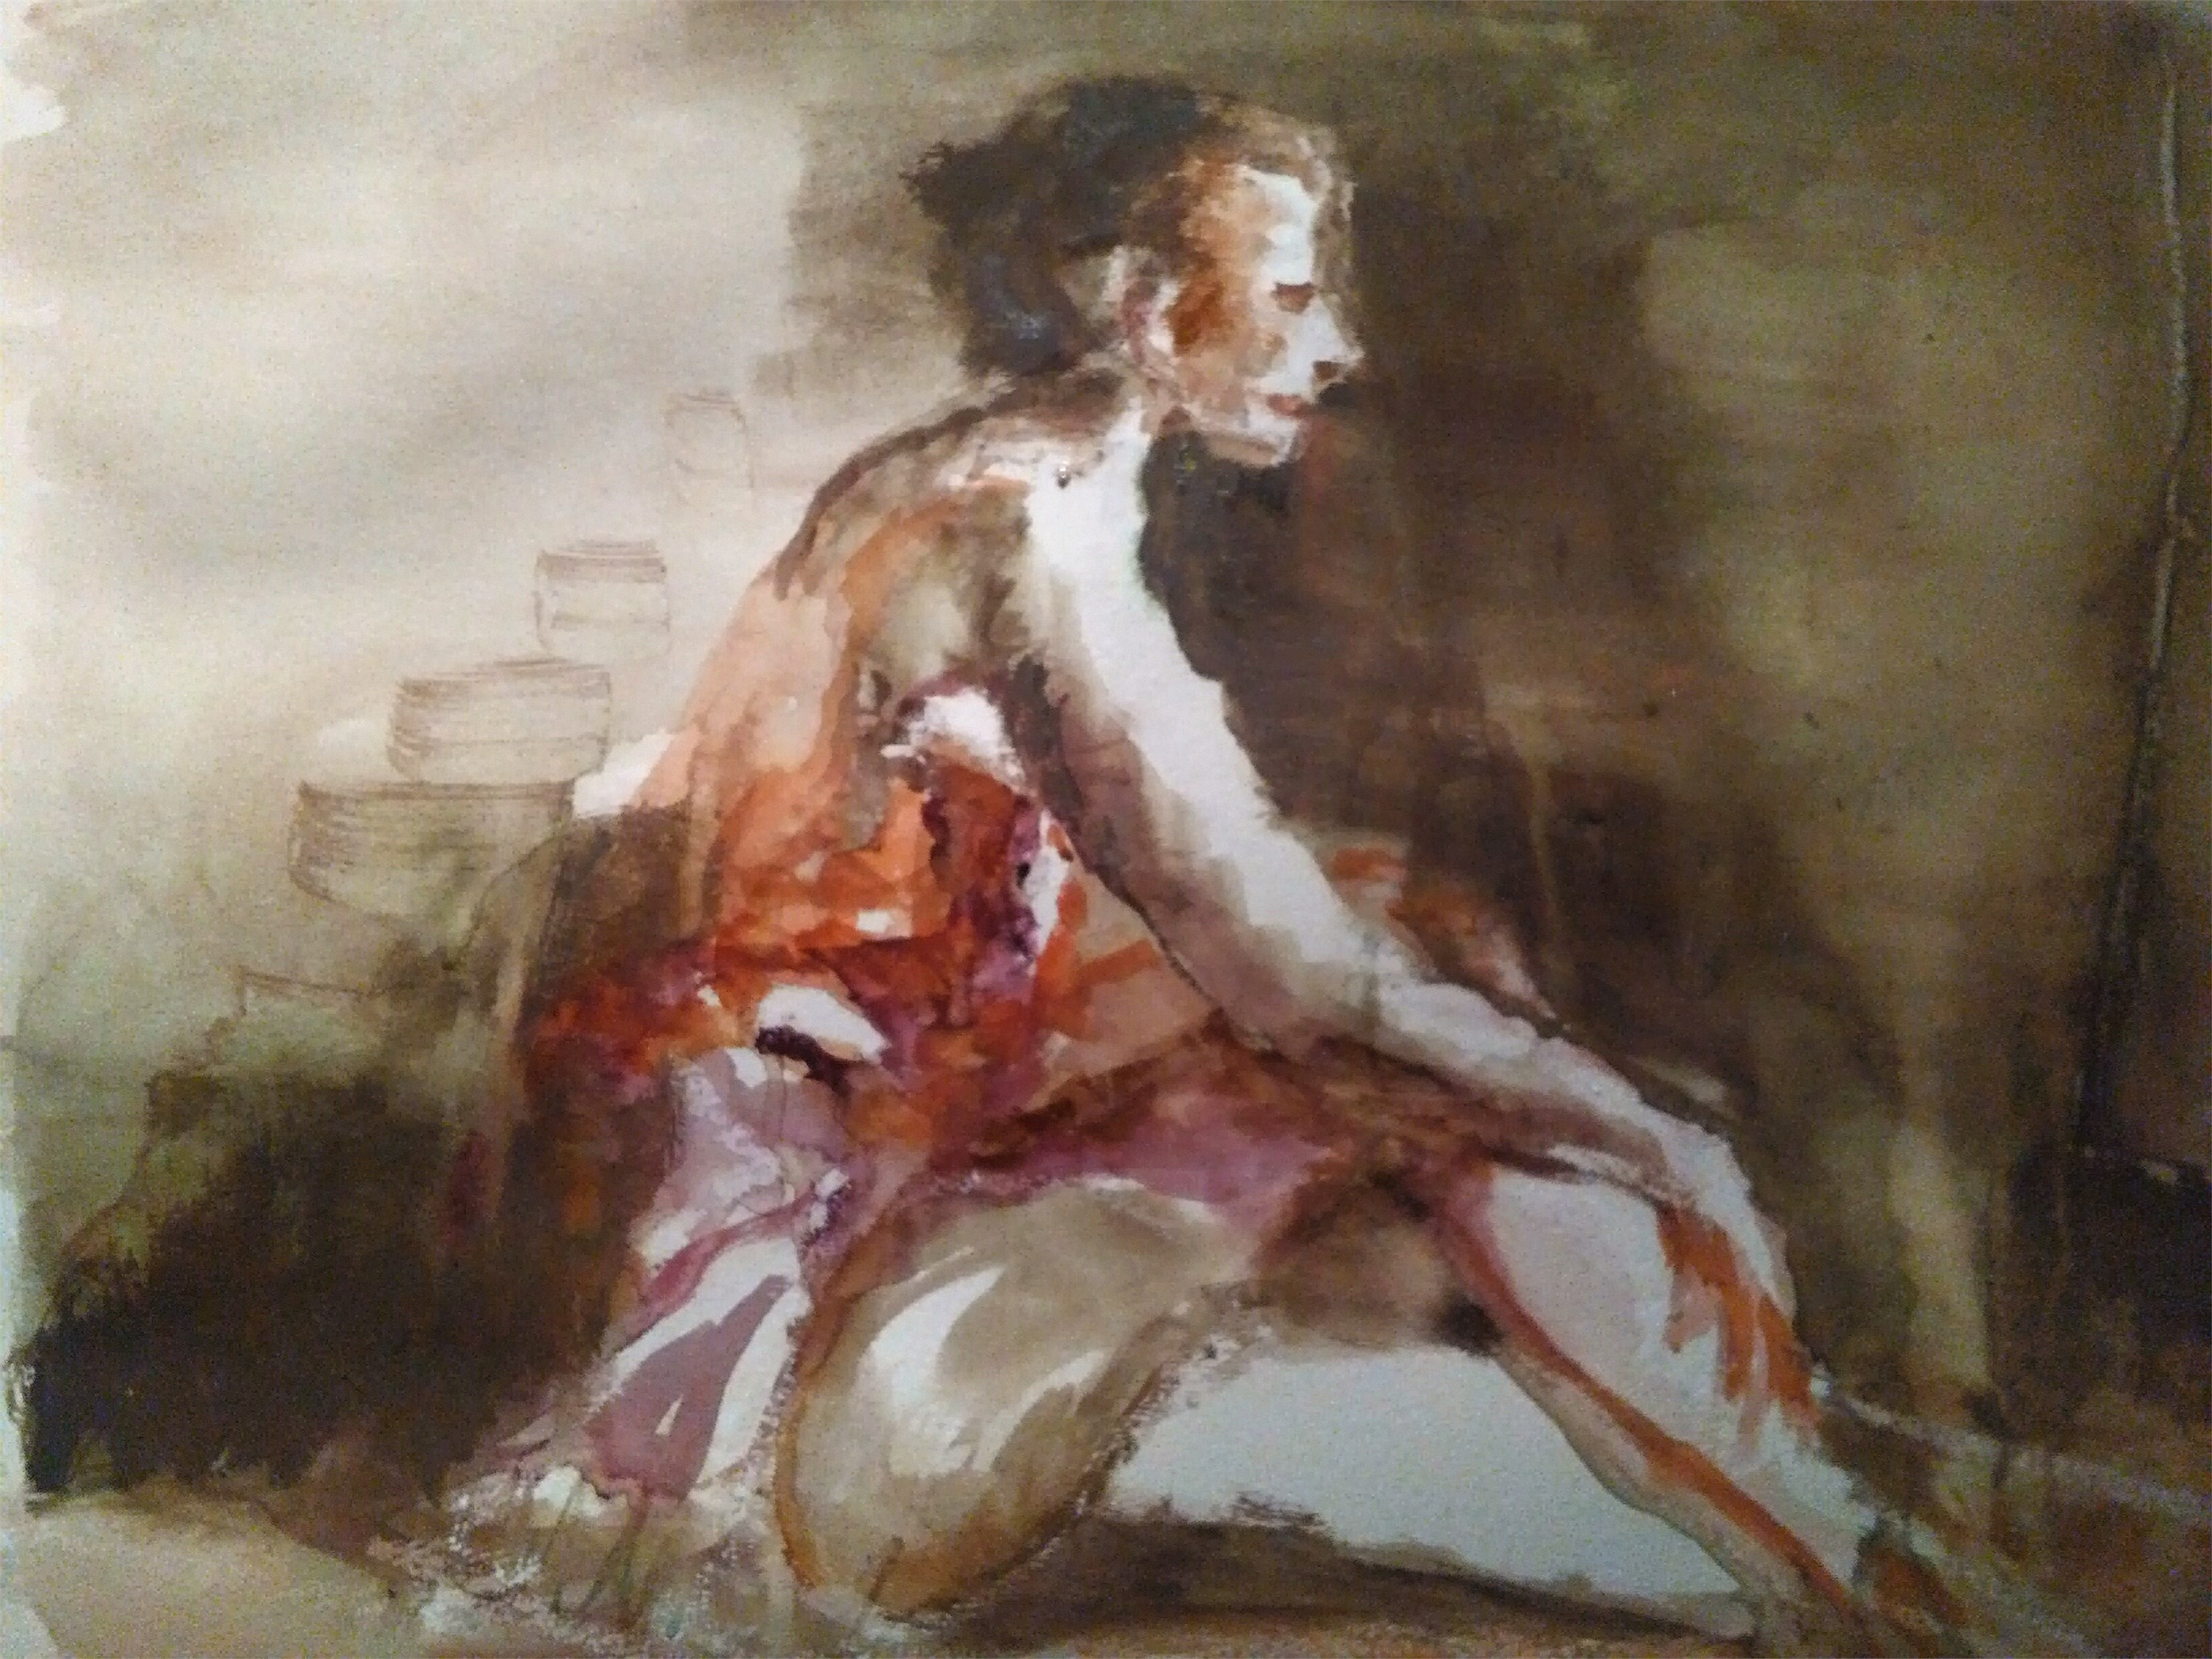 Waiting Hopper, original Human Figure Watercolor Painting by CARLA GONCALVES